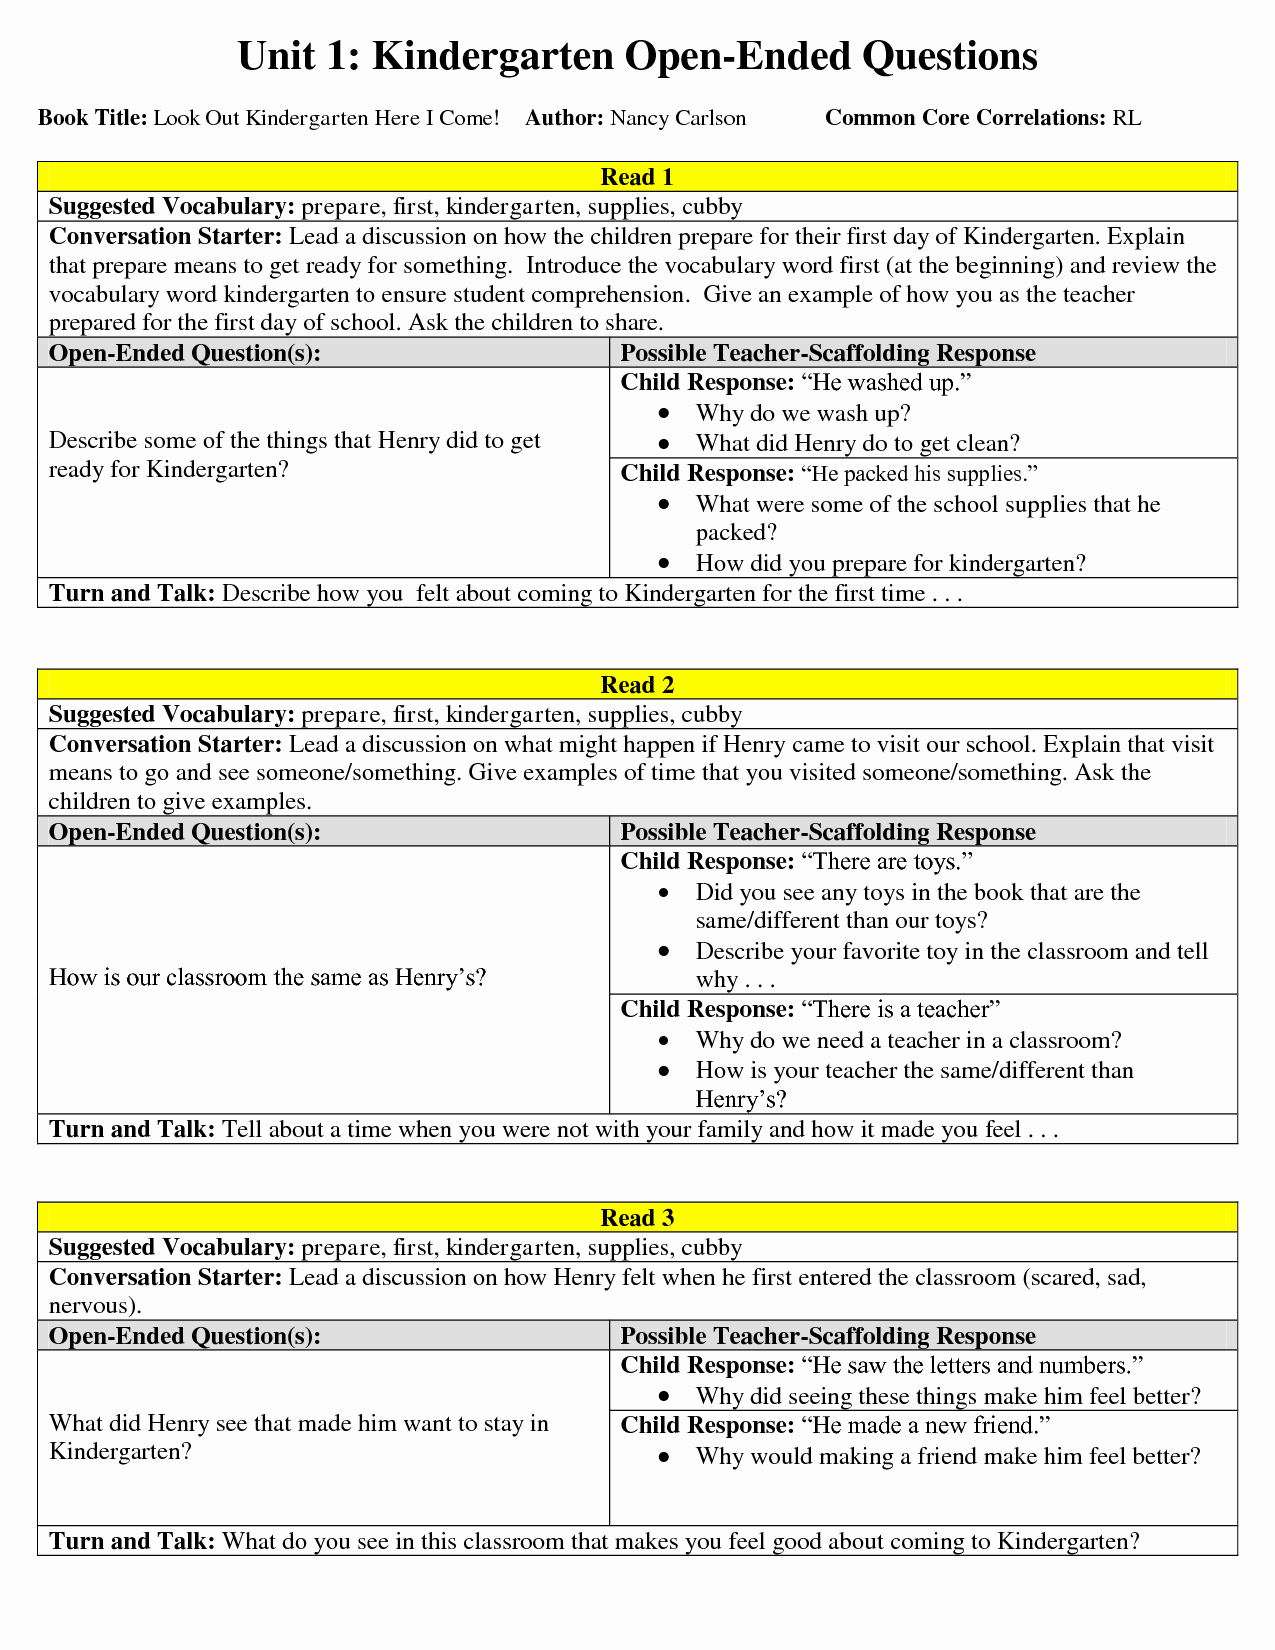 Kindergarten Lesson Plan Template Fresh Mon Core Lessons for Kindergarten